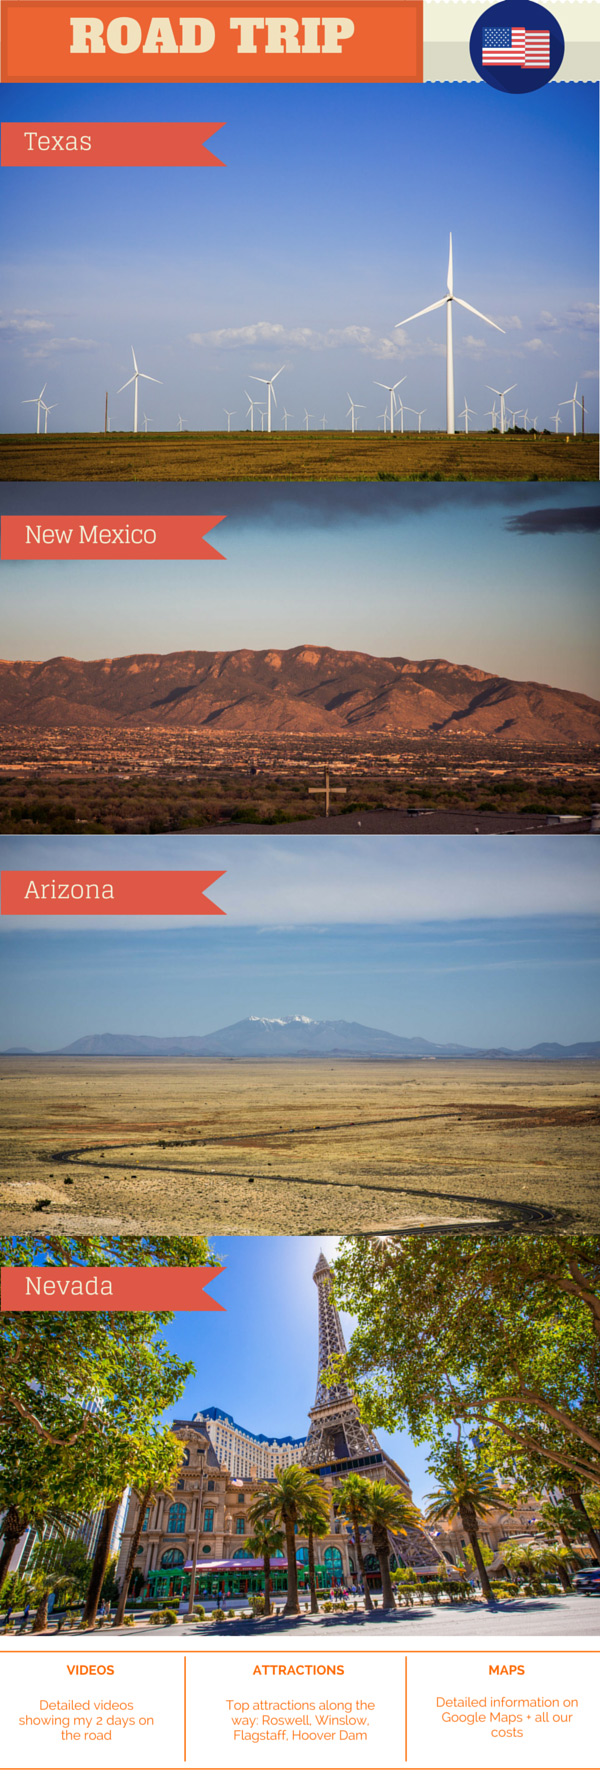 Road trip from Texas to Las Vegas - Day 1